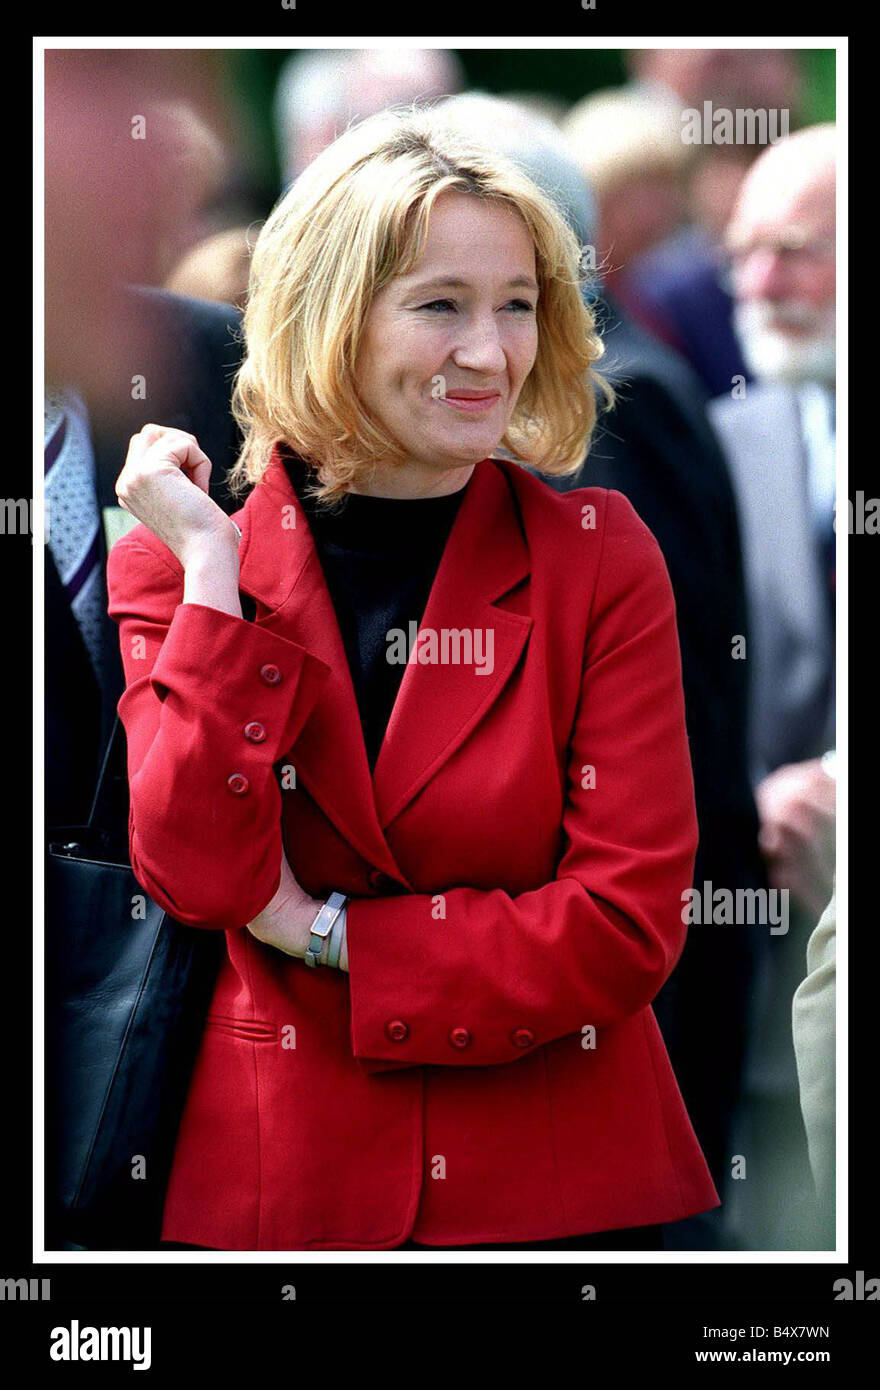 JK Rowling author of the Harry Potter books July 2000 at Holyrood Palace for the Duke of Edinburgh Awards - Stock Image